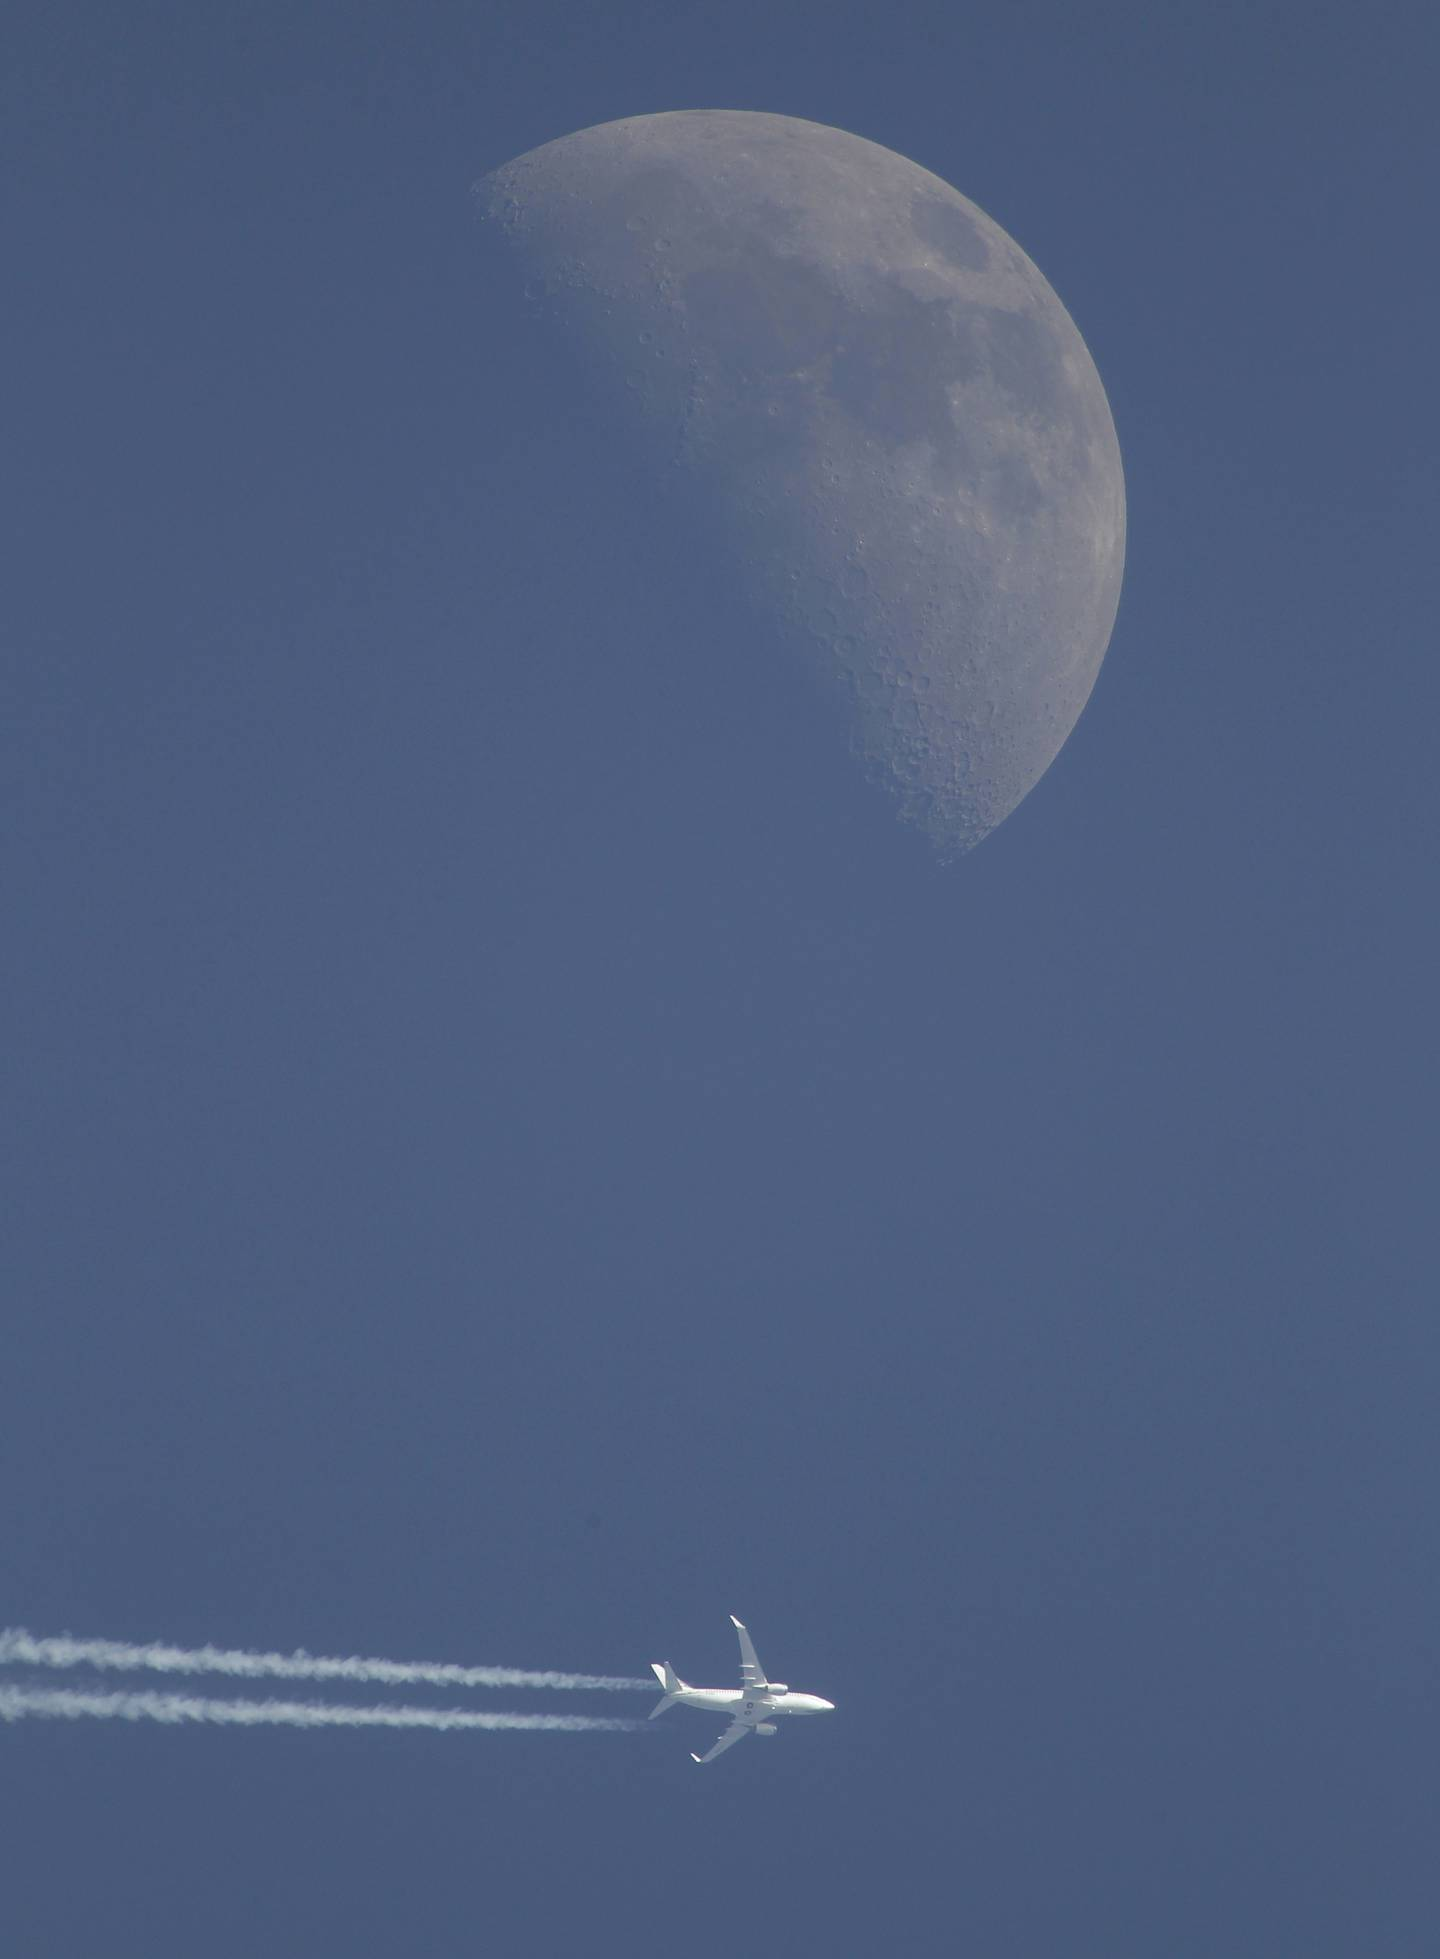 A jet airplane leaves a trail in the sky Sunday evening, April 29, 2012, over Novogrudok, 150 kilometers (93 miles) west of the capital Minsk, Belarus. The waxing crescent moon will be full May 6. (AP Photo/Sergei Grits)